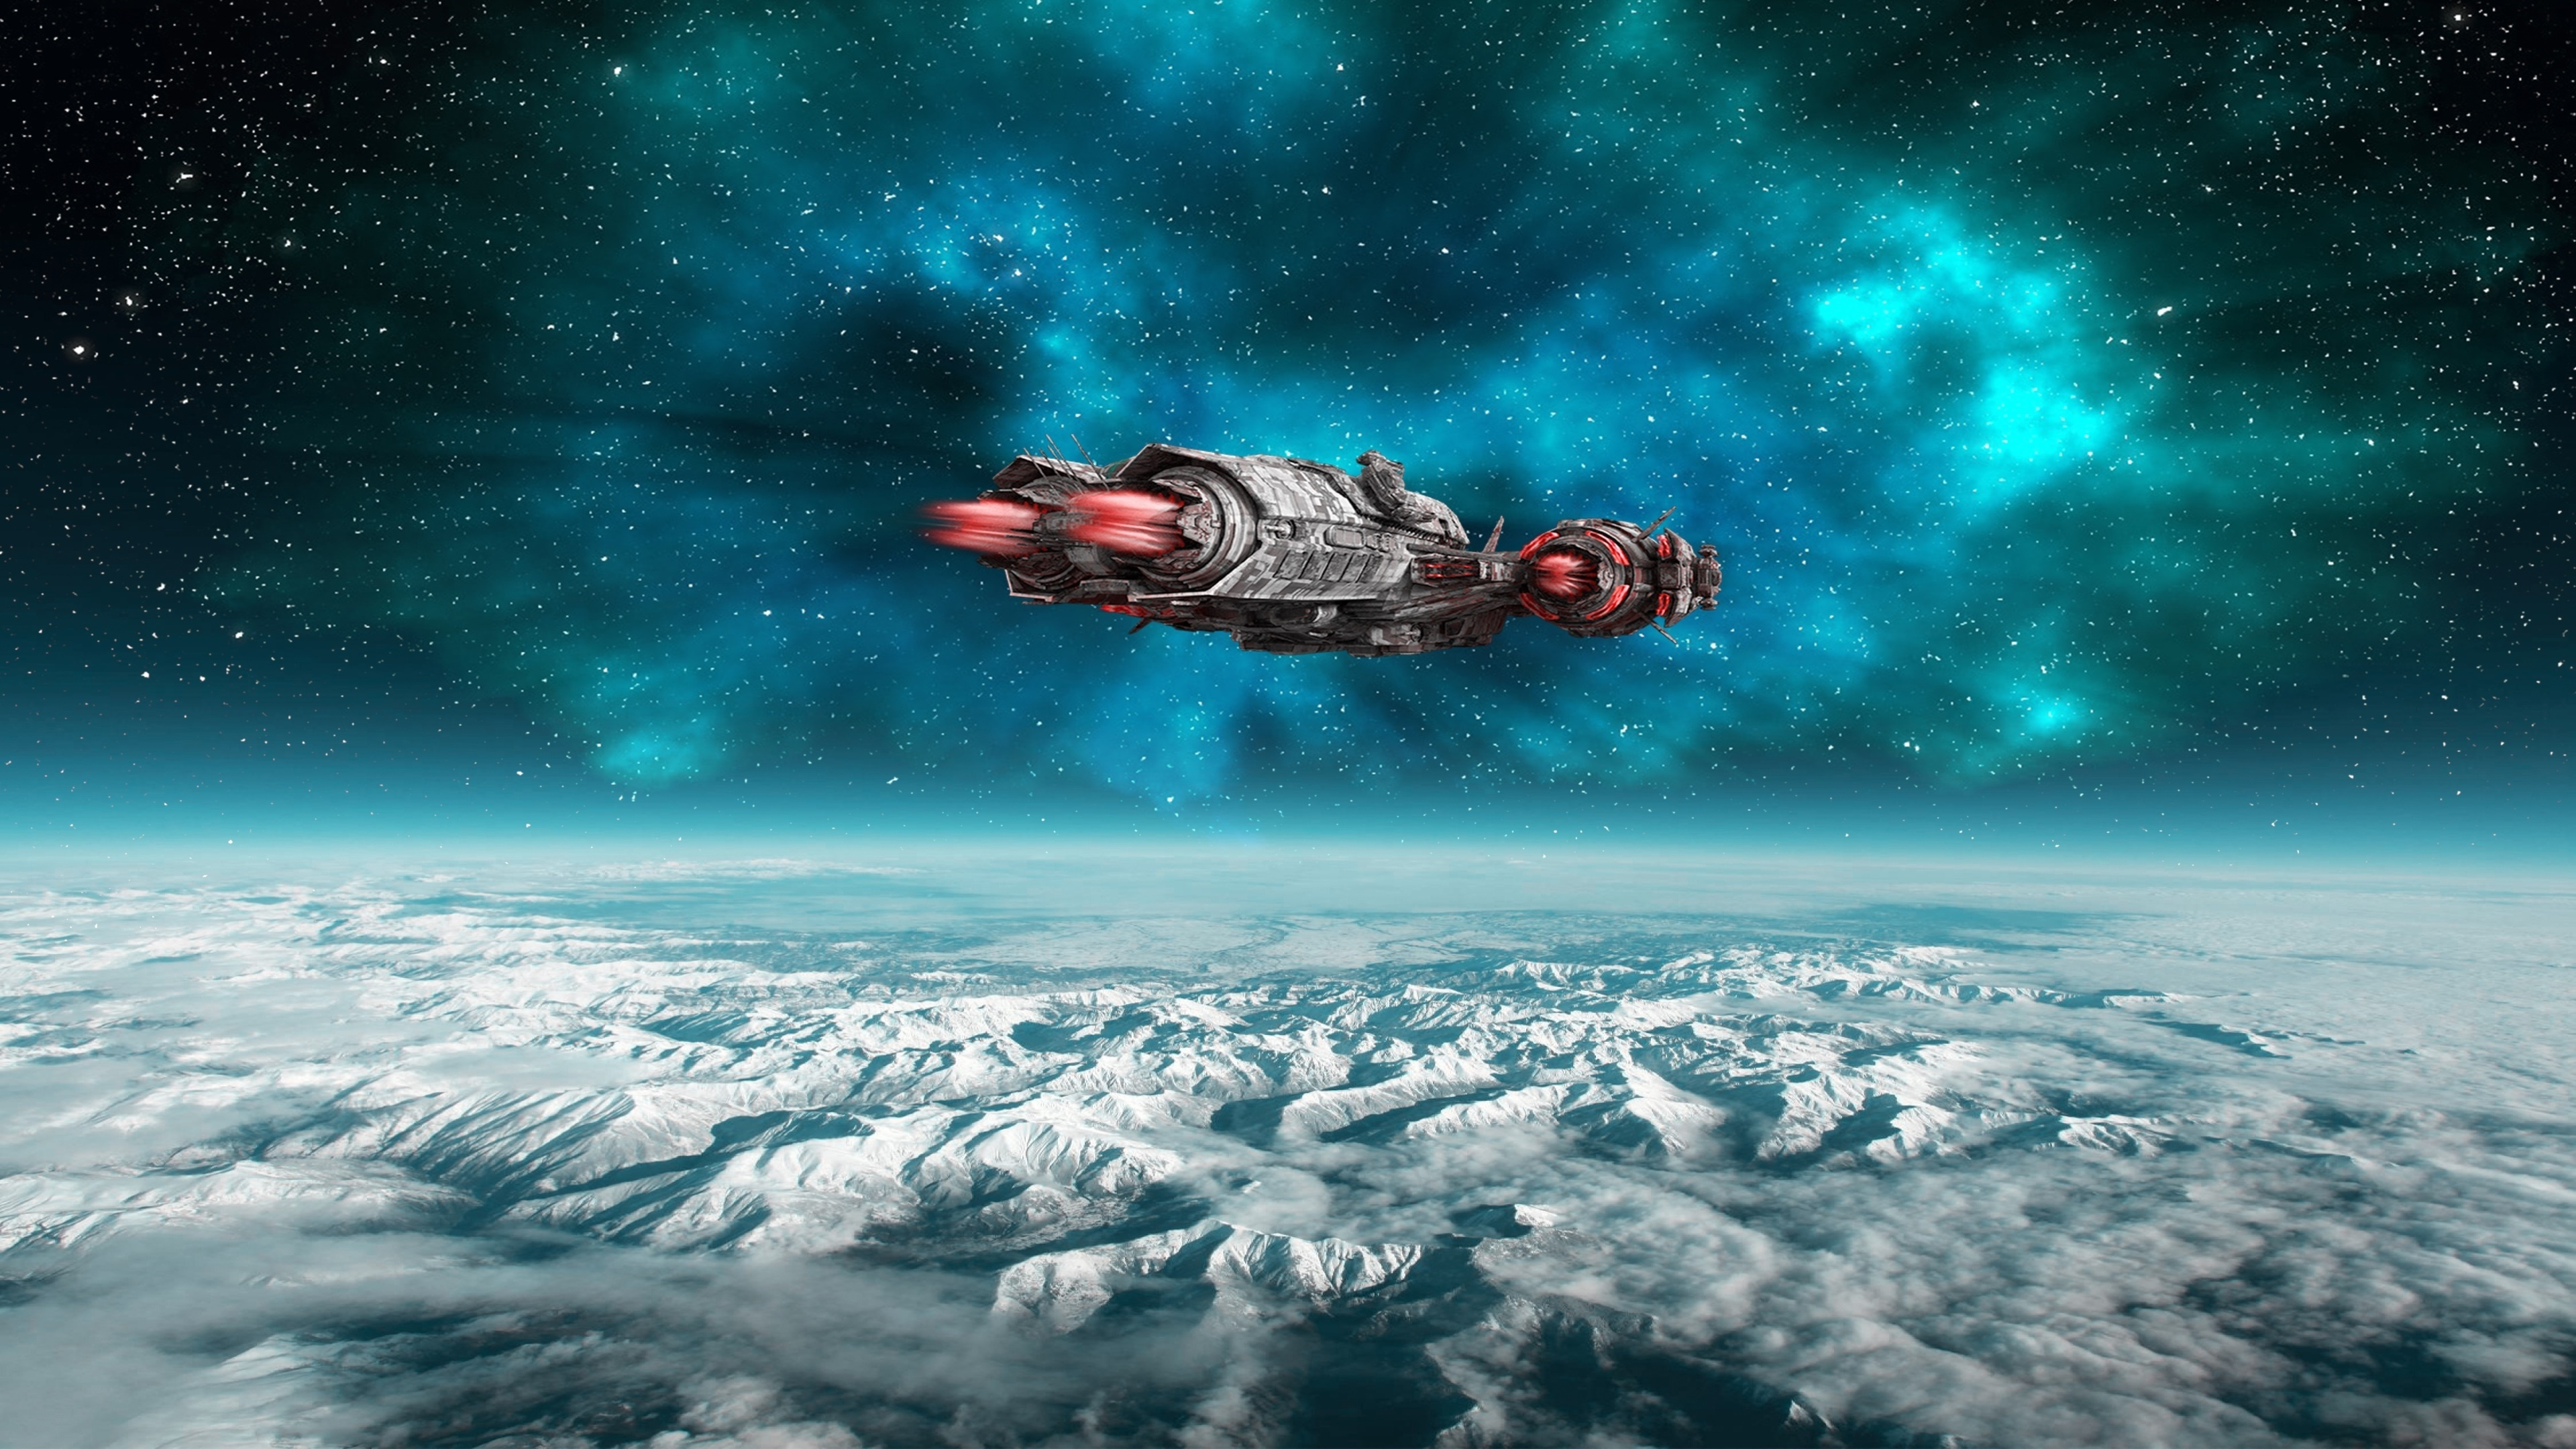 Spaceship sci-fi art wallpaper